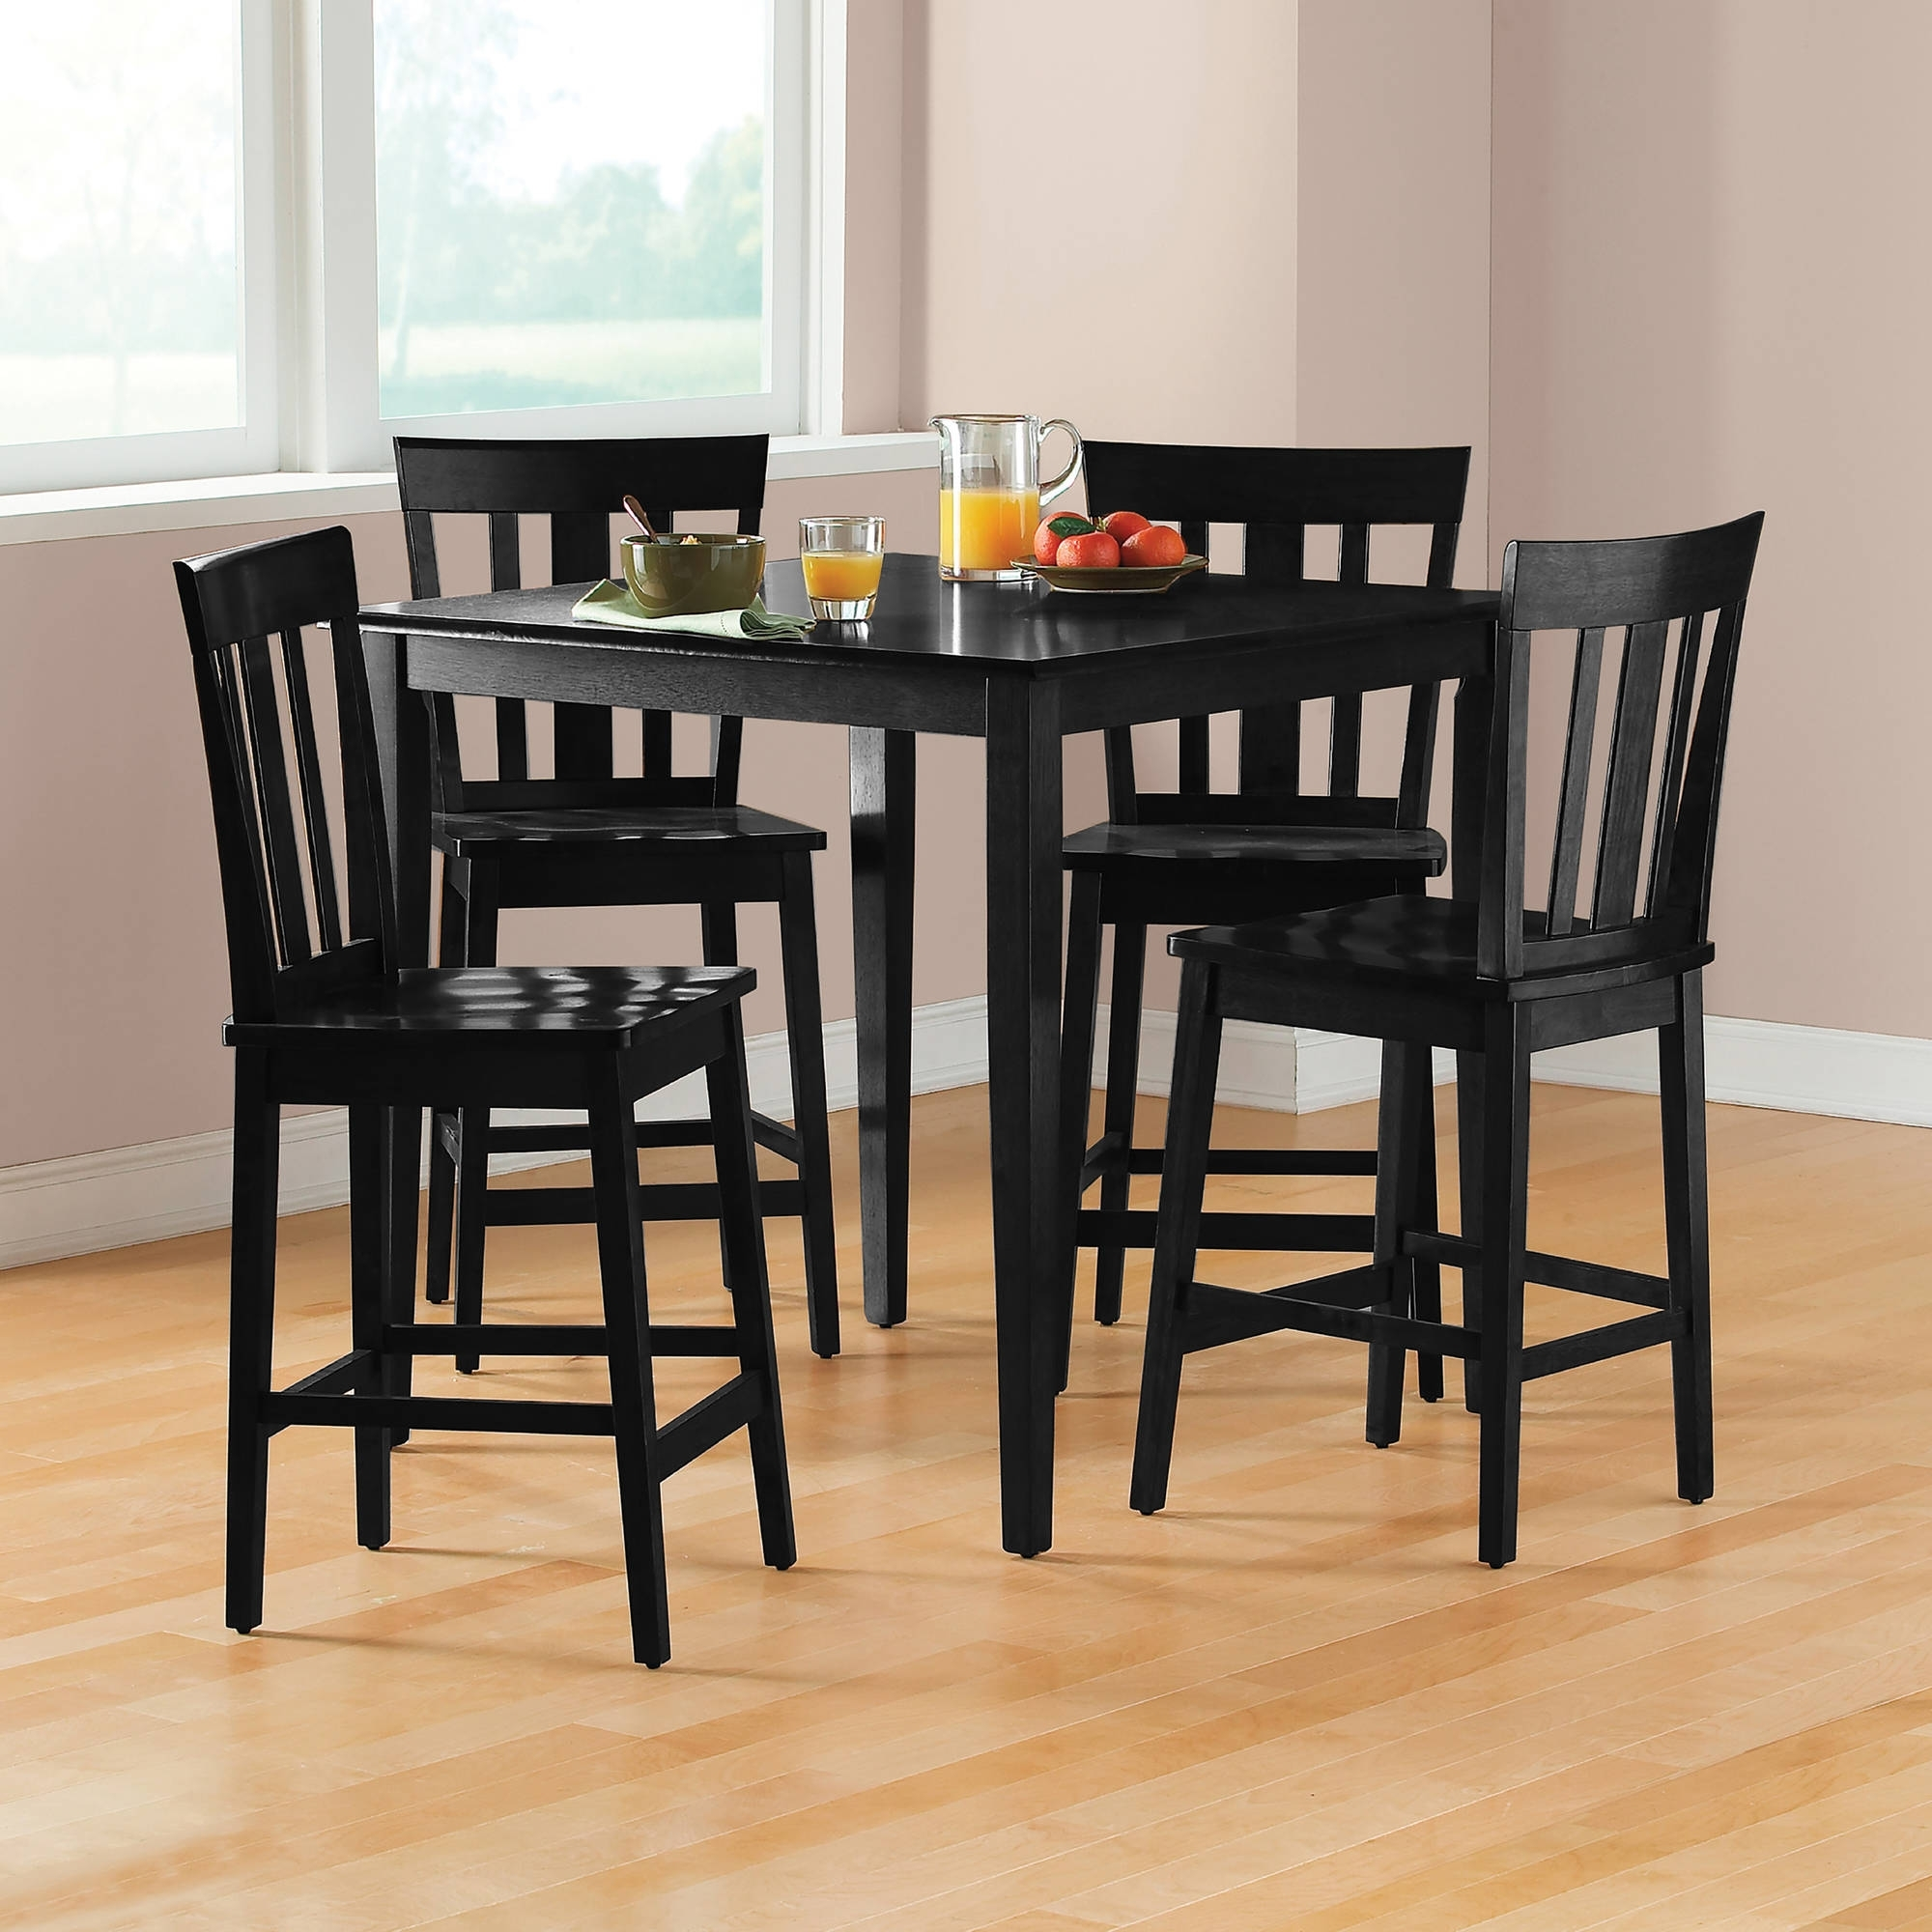 Mainstays 5 Piece Mission Counter Height Dining Set – Walmart For Latest Pierce 5 Piece Counter Sets (Photo 4 of 20)